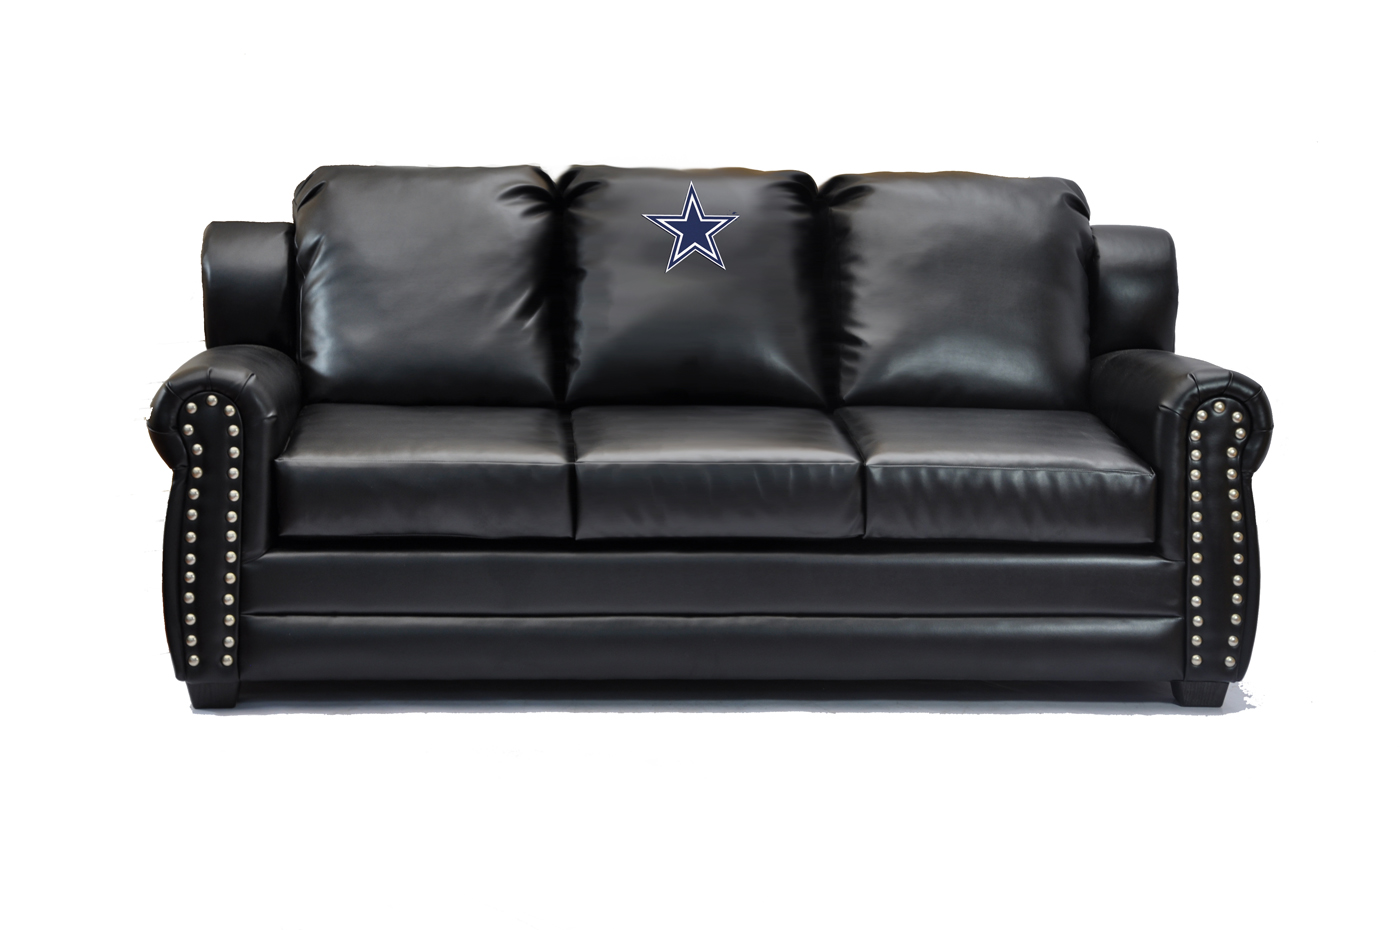 Dallas Cowboy Chair Dallas Cowboys Coach Leather Sofa